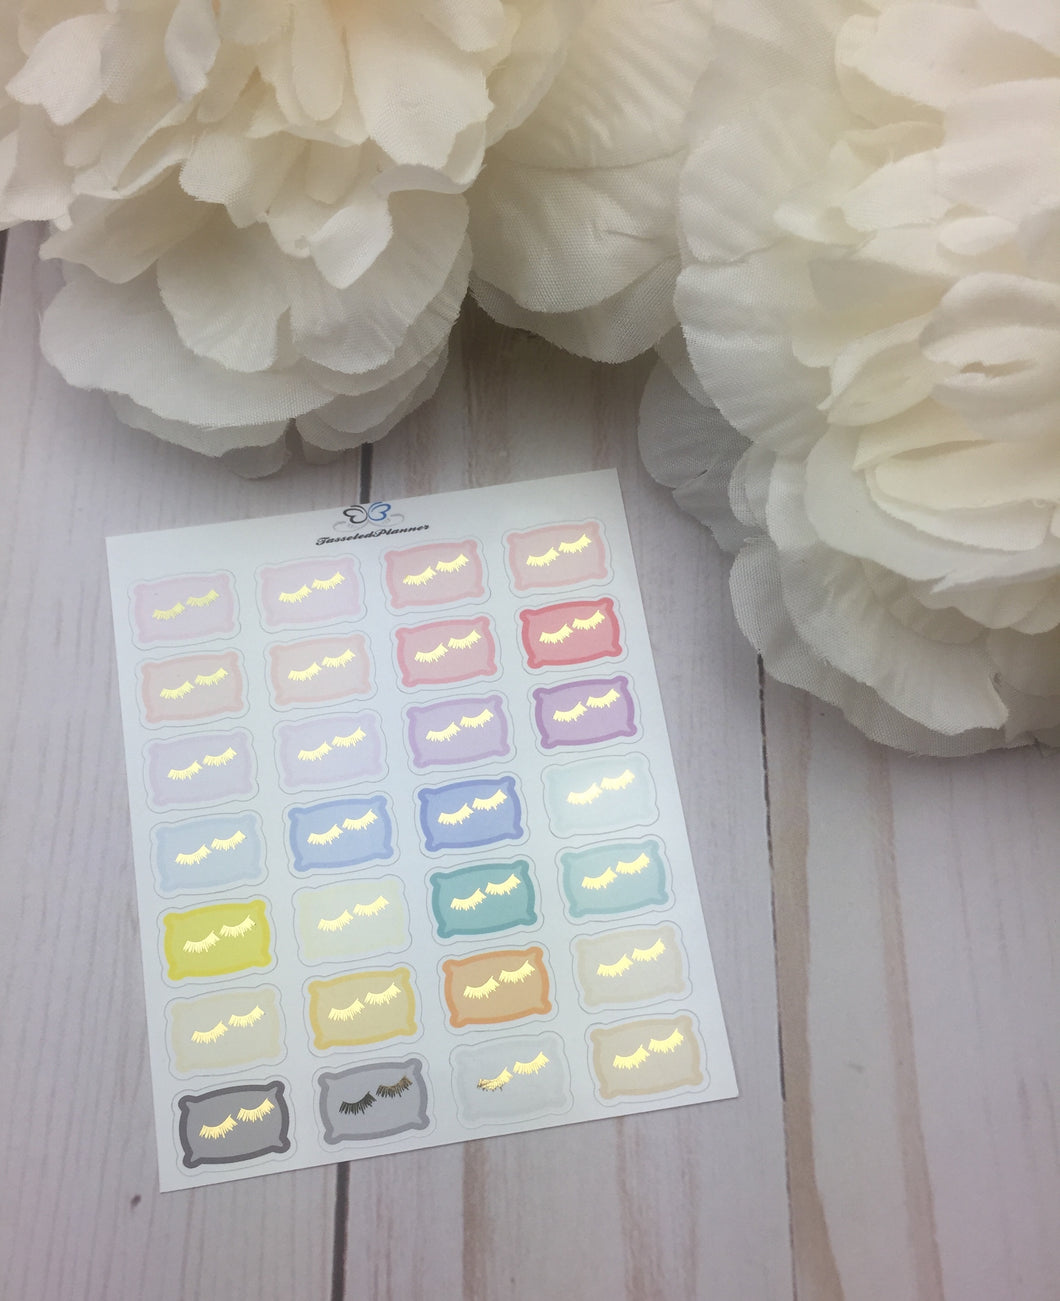 Foil Pillow Planner Stickers | Foil Sleep In Planner Stickers | Planner Stickers